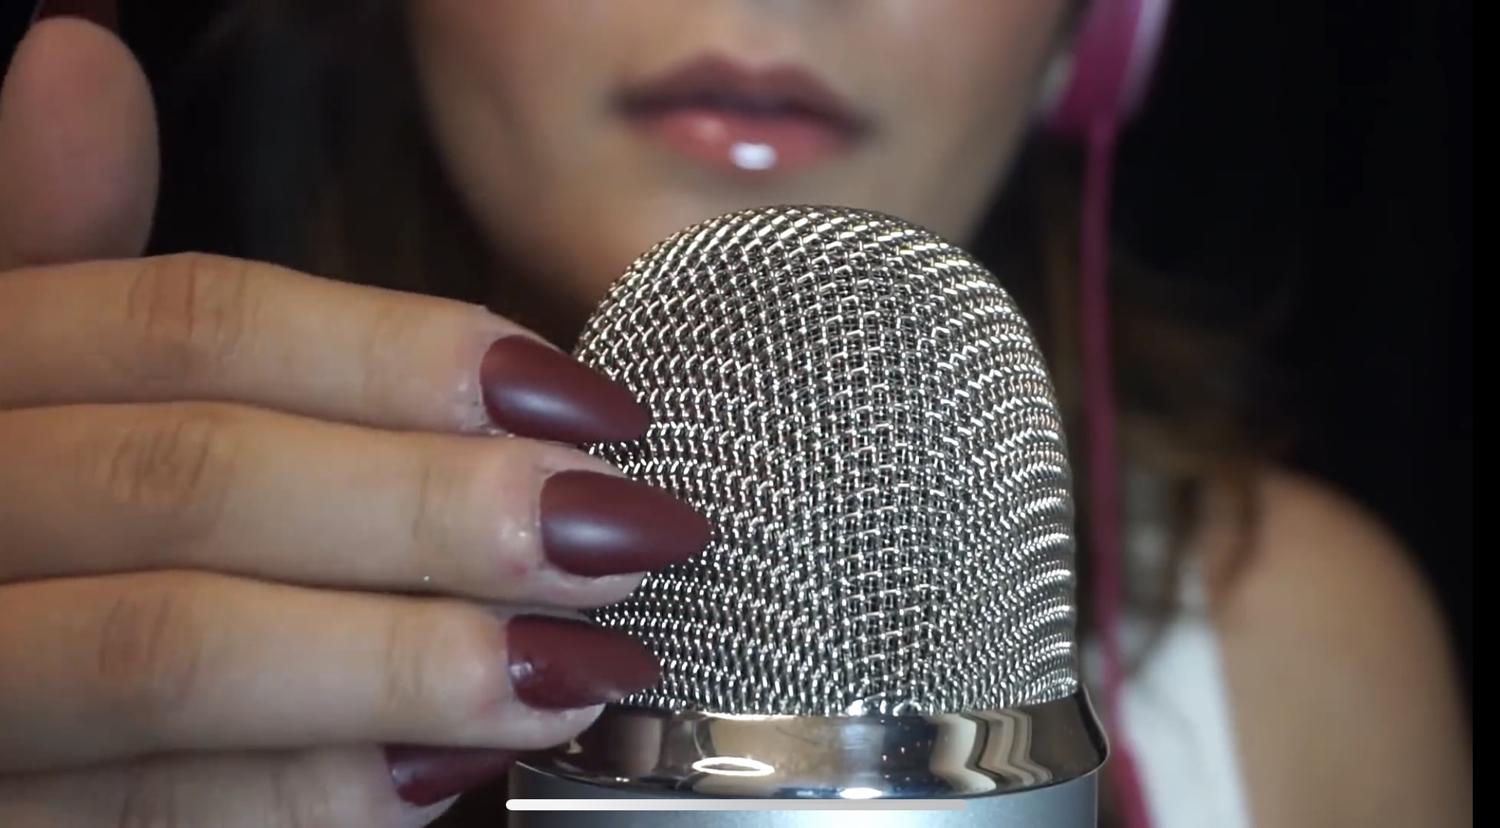 Pittsburgh native Lilliana Dee taps her acrylic nails on a microphone for an ASMR video on her YouTube channel that has more than 200,000 subscribers.